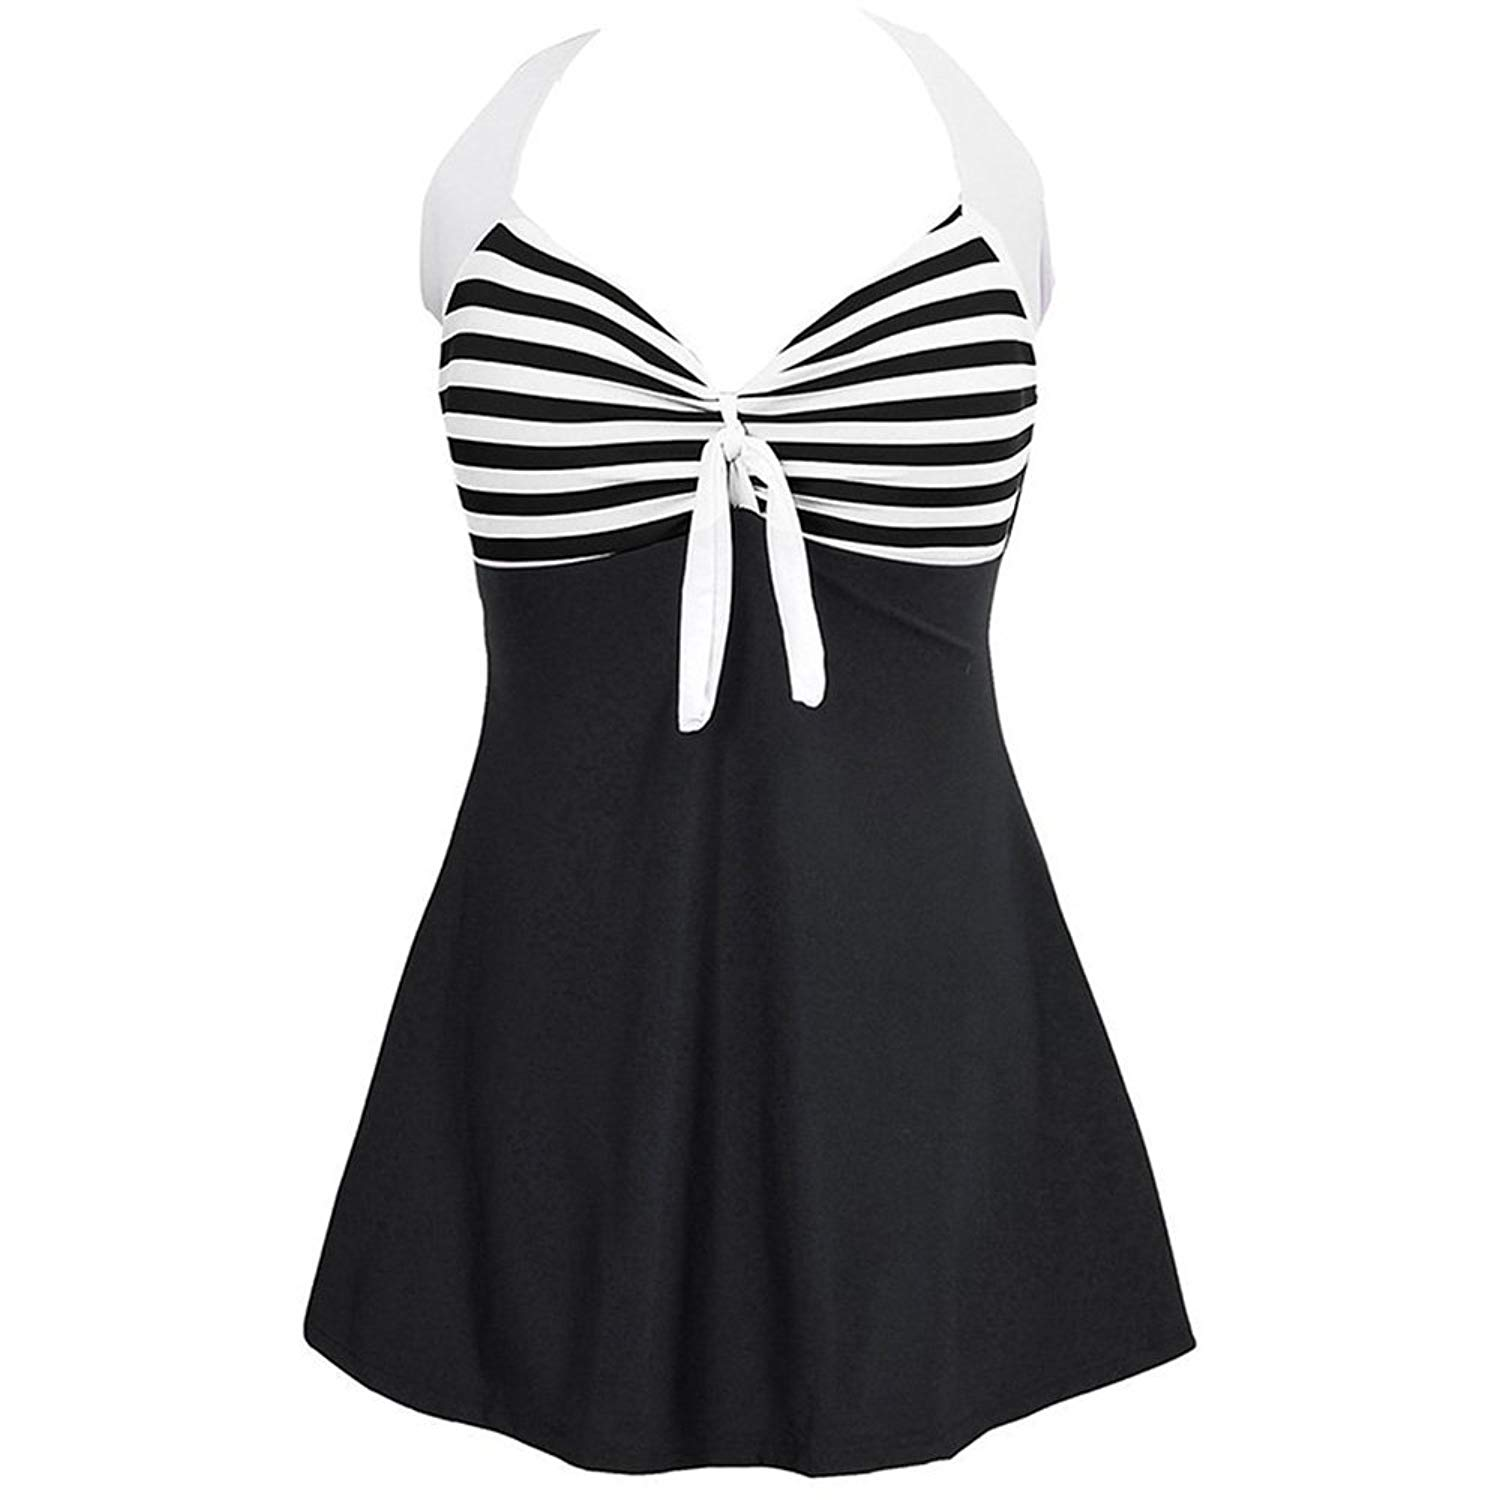 6f0dd93f9d1 Get Quotations · FZUU Swimsuit Womens Vintage Sailor Straps Halter Pin Up Swimsuit  One Piece Cover Up Bathing Suit